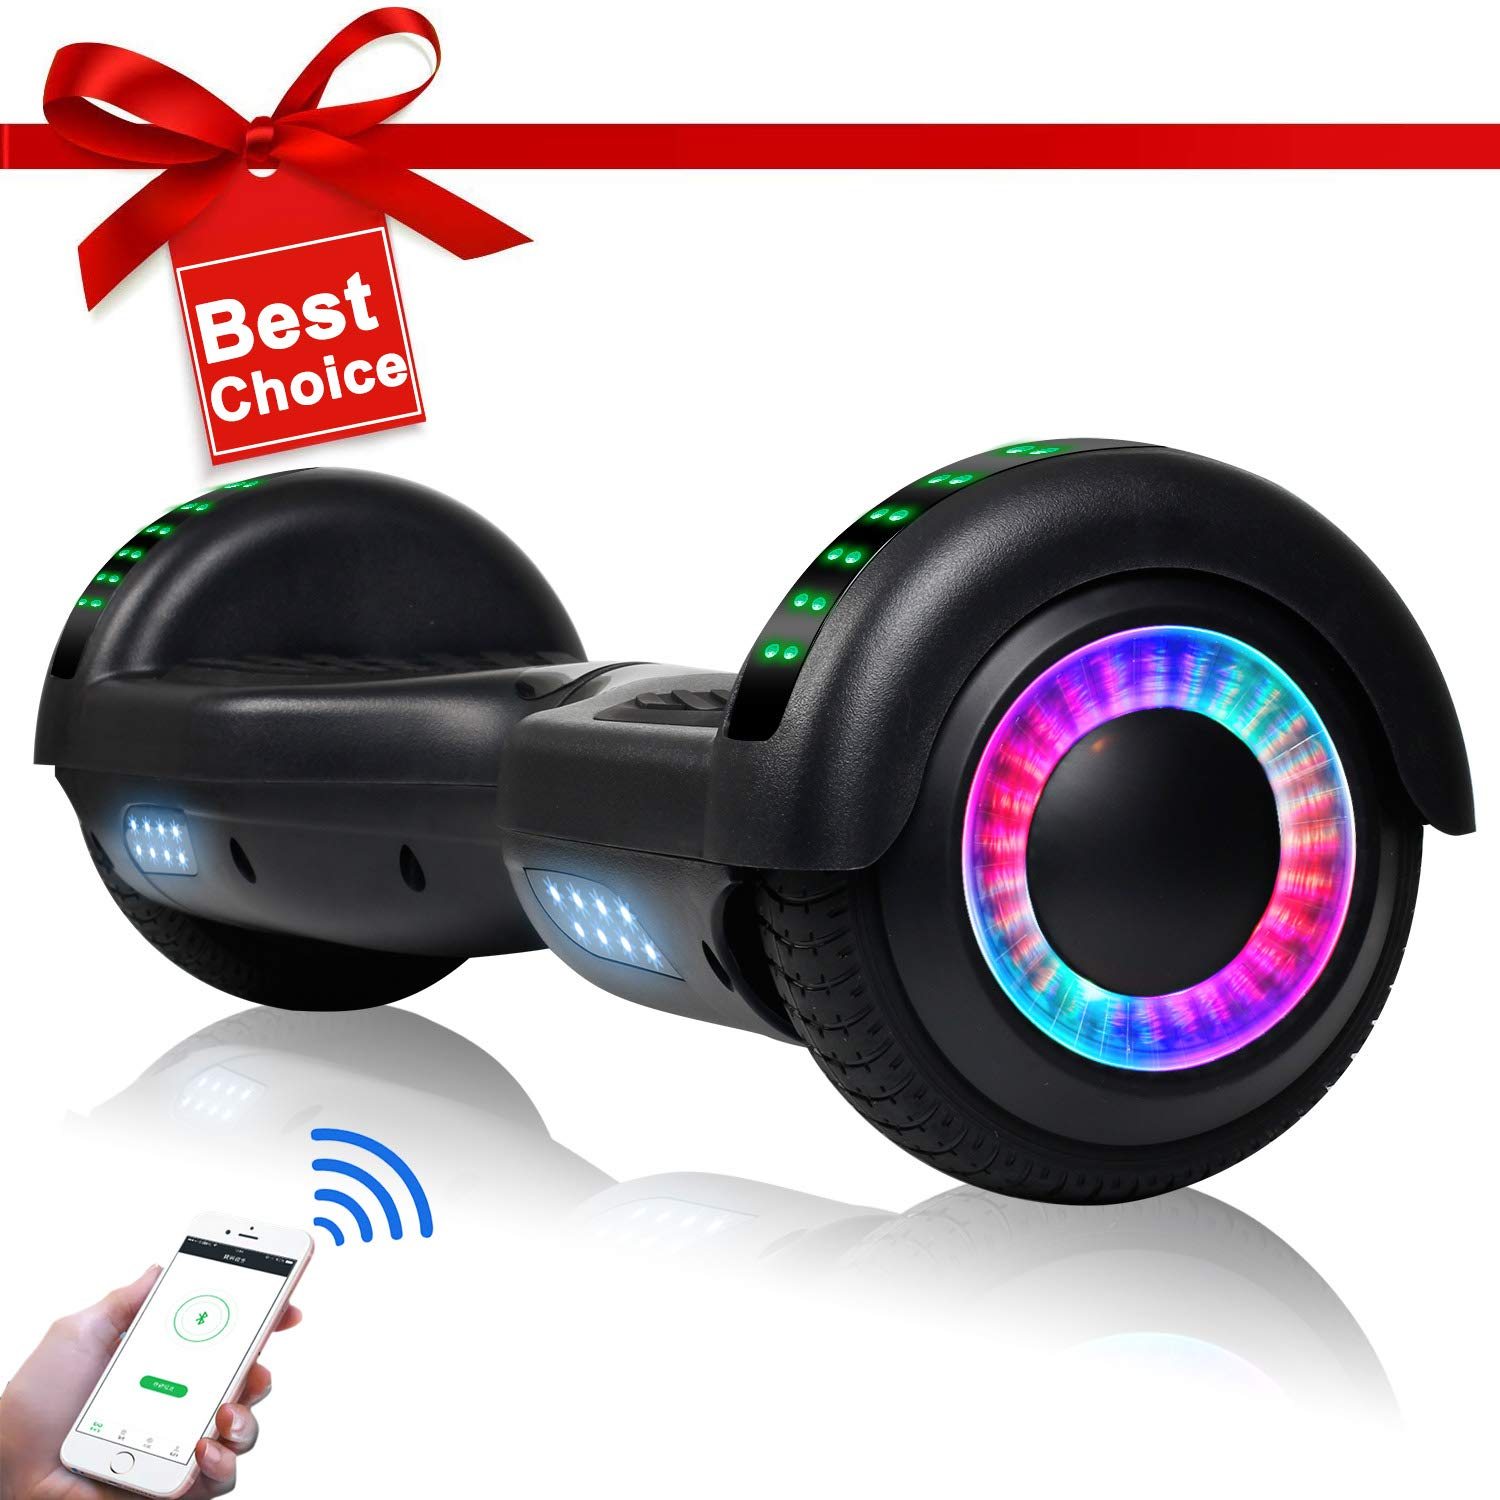 jolege 6.5'' Hoverboard for Kids Two-Wheel Self Balancing Electric Scooter Hover Board - UL2272 Certified